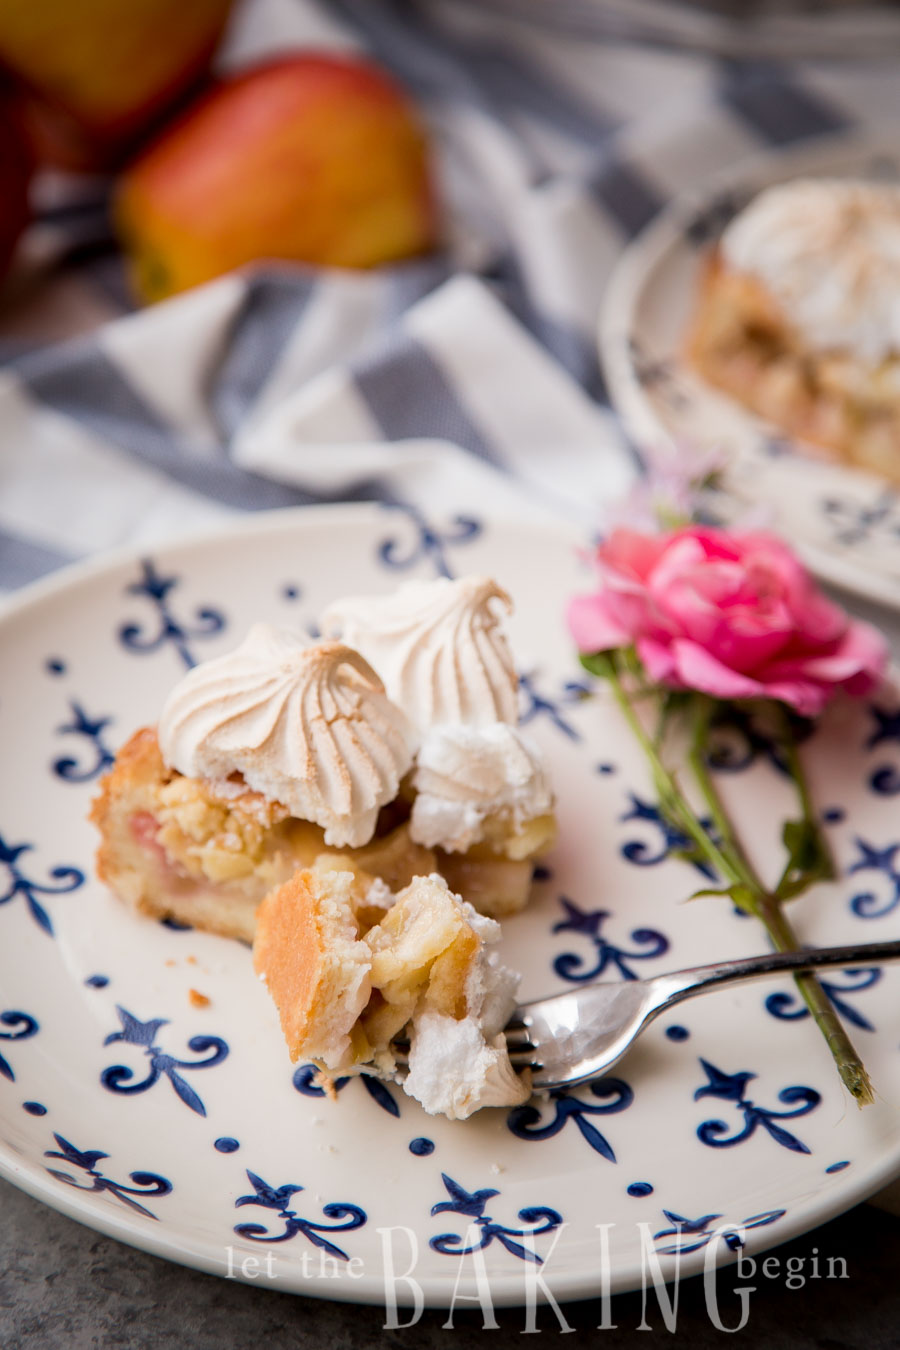 A slice of rhubarb meringue pirog on a white and blue cake with a fork.